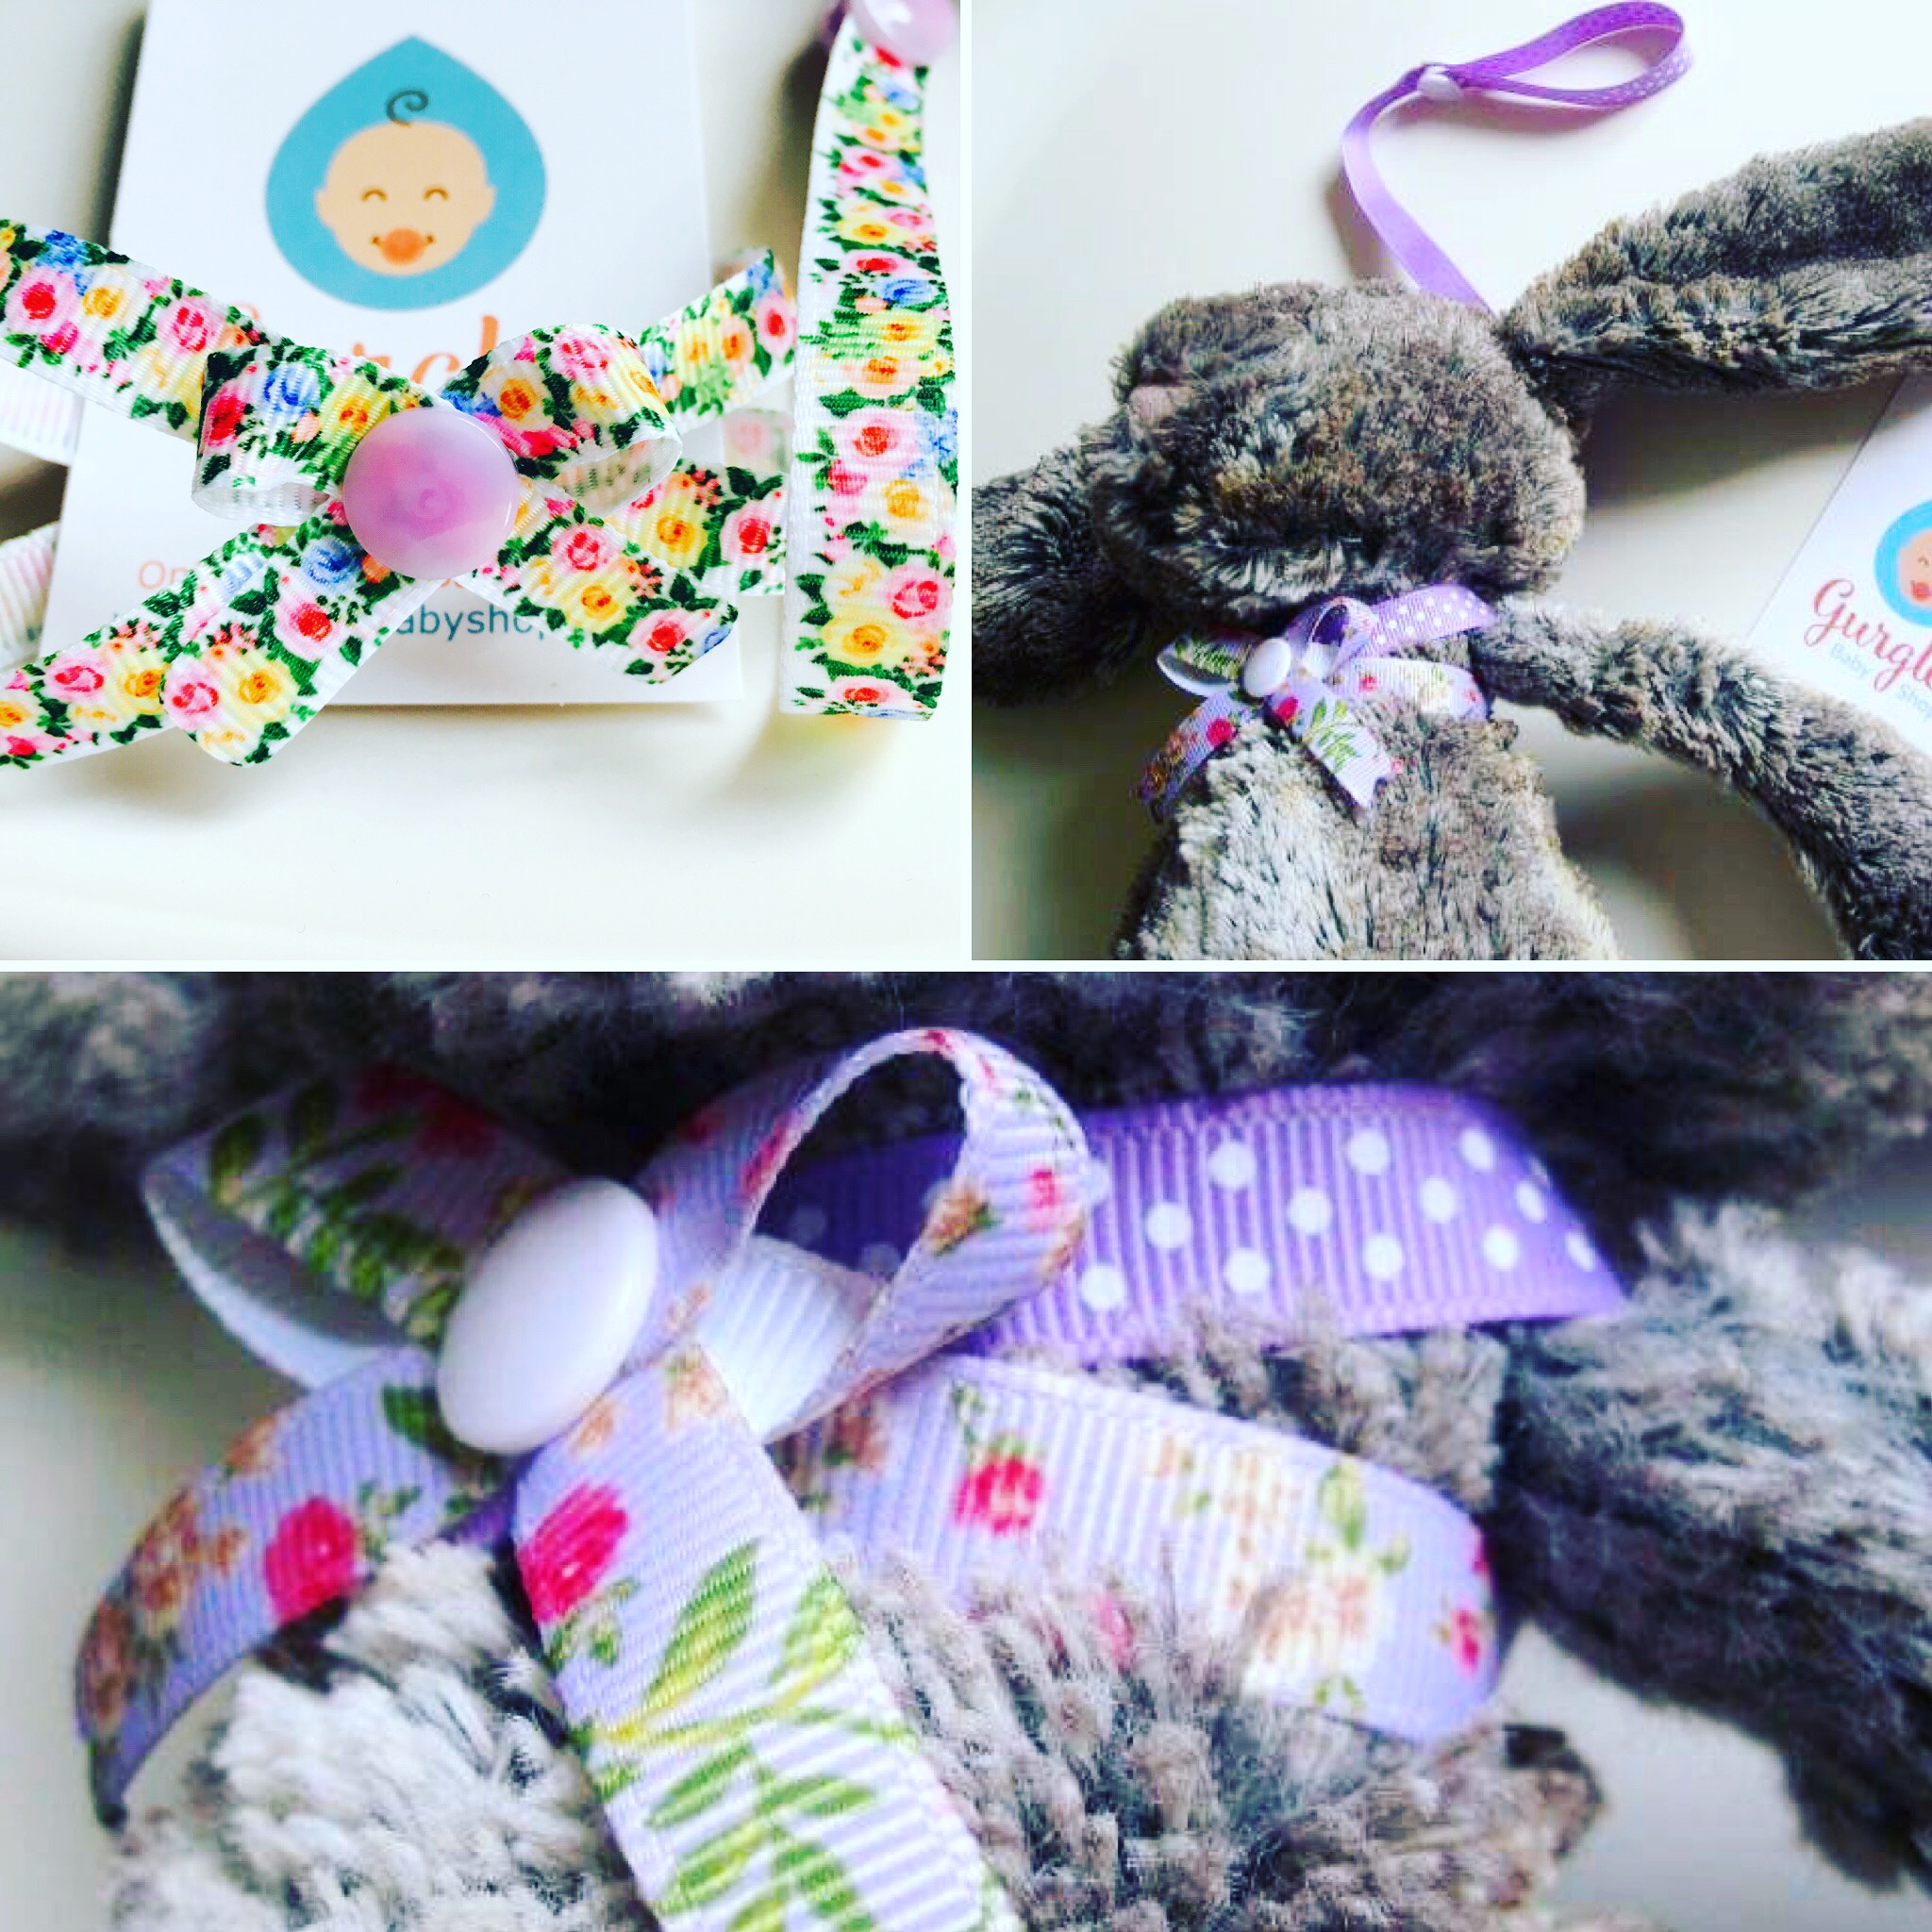 Gurgles Jellycat harness - This harness is a registered design ®. It was designed by myself in 2015 originally to fit a giraffe comforter toy for my daughter. I have now designed and produced so many variations of the harness. It is great to see so many of you love it!Jellycat size chart - Medium H31 cm, Small H18 cm, Tiny H13 cm.Have yours made for any toy, ooooh and did you see the ribbon selection?Gurgles ribbon selection